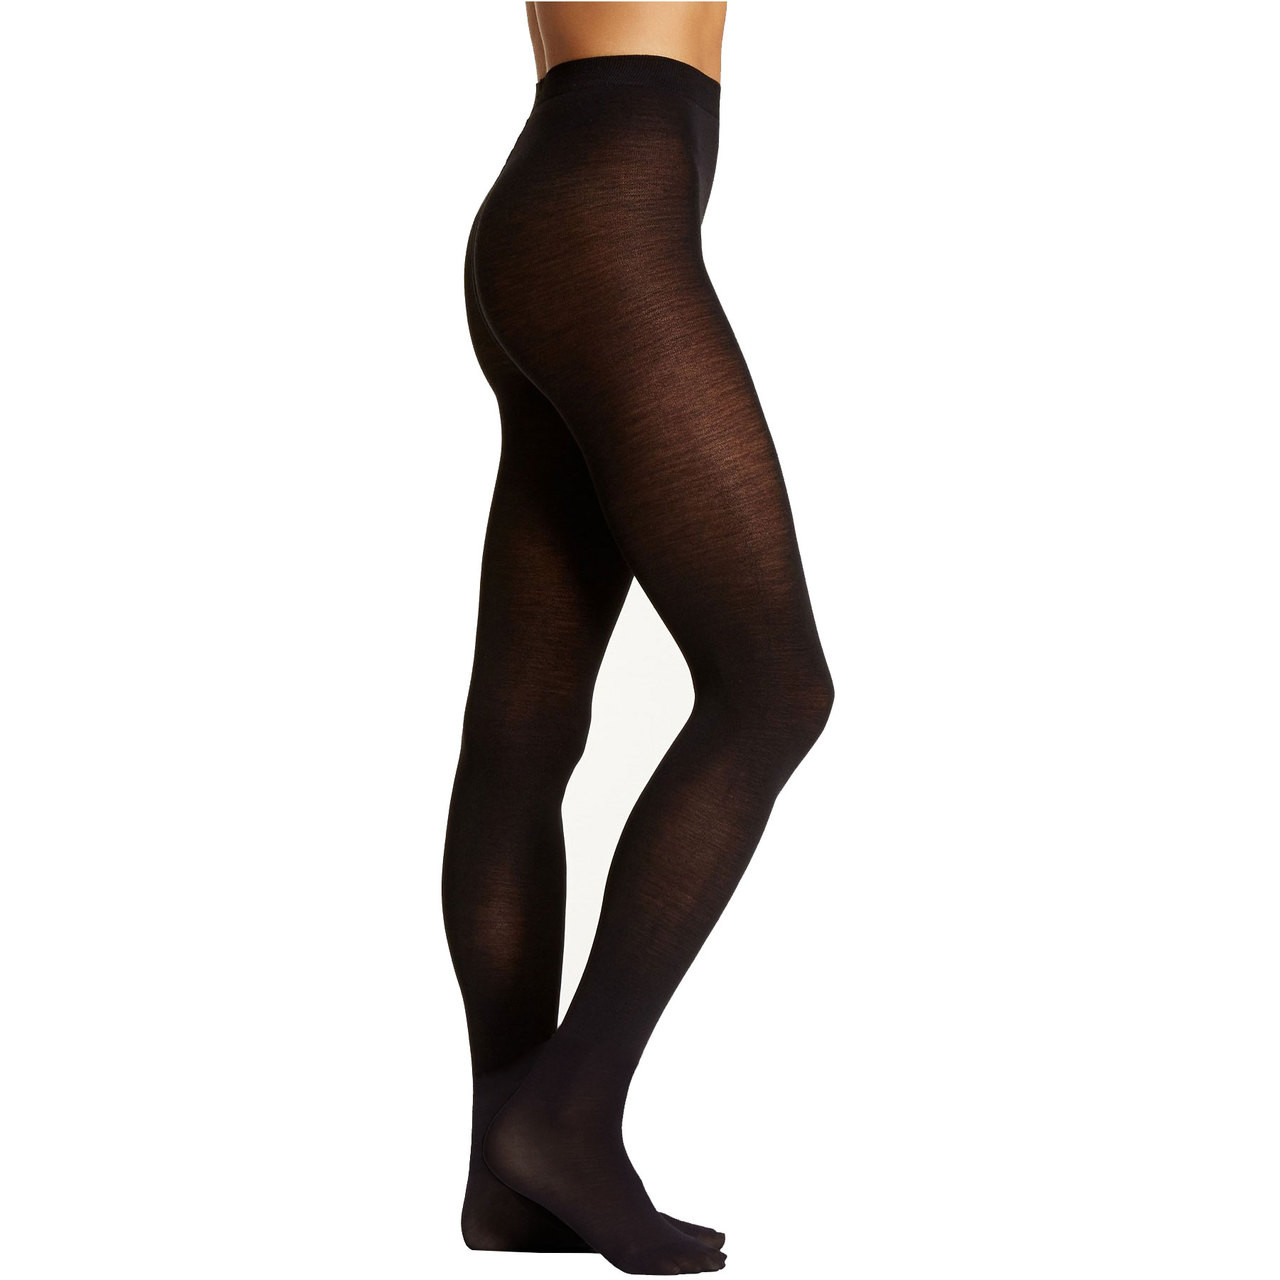 382c303f3809d French Curve Cashmere Wool Knit Tights | condemnedtobefree.com